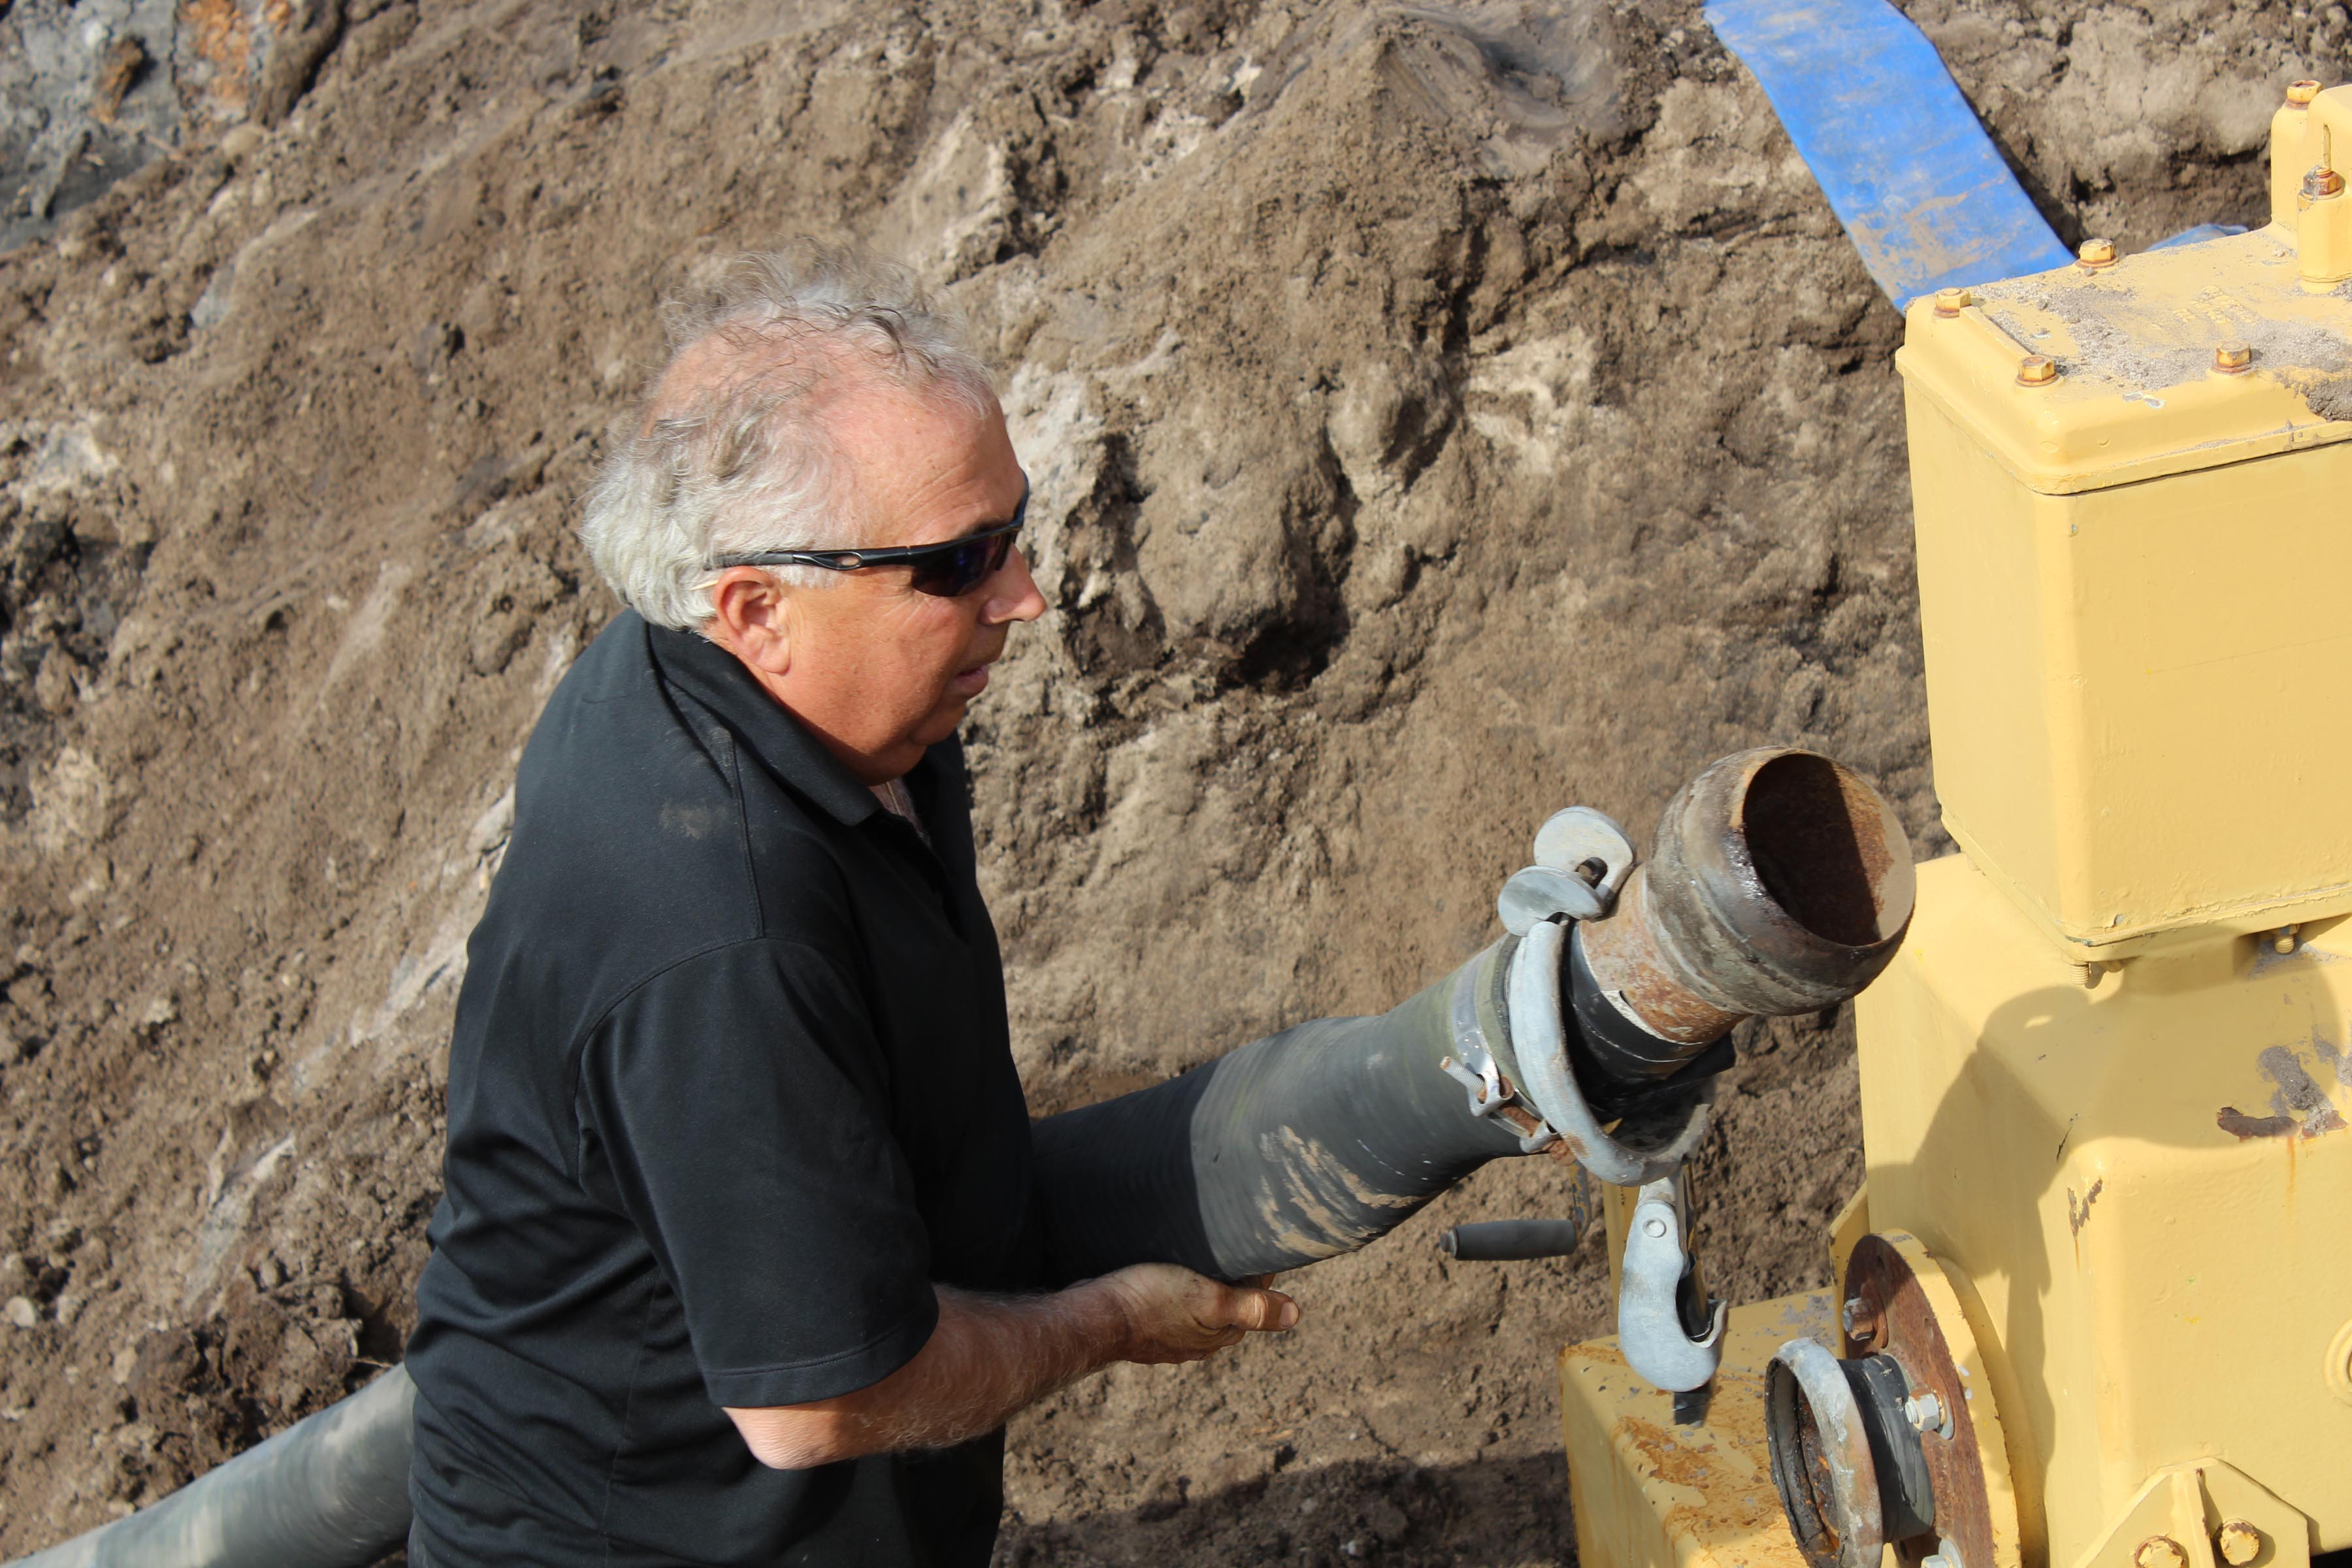 Bill hooks up a large hose to a water pump